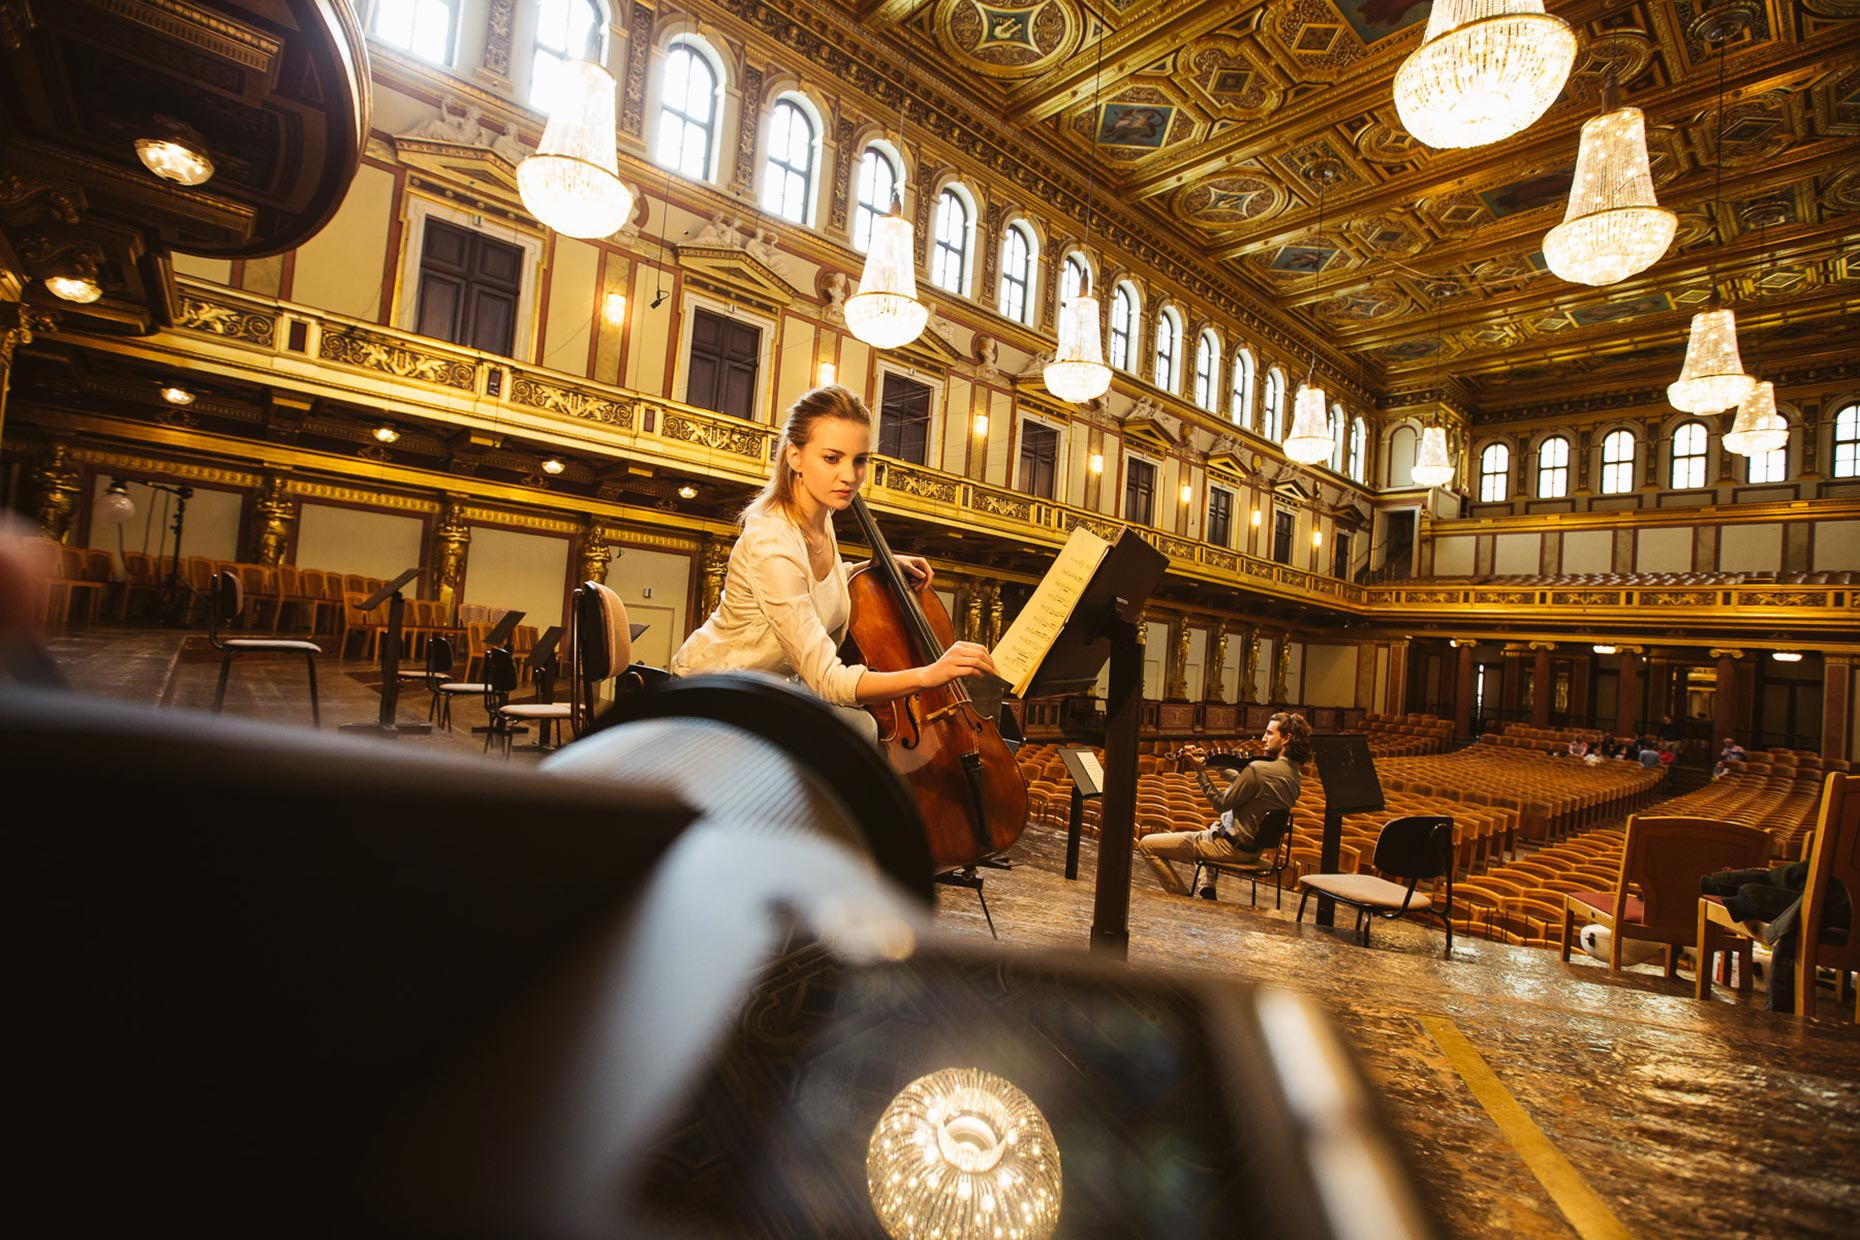 stiphout_oct16_OEW-musikverein-749